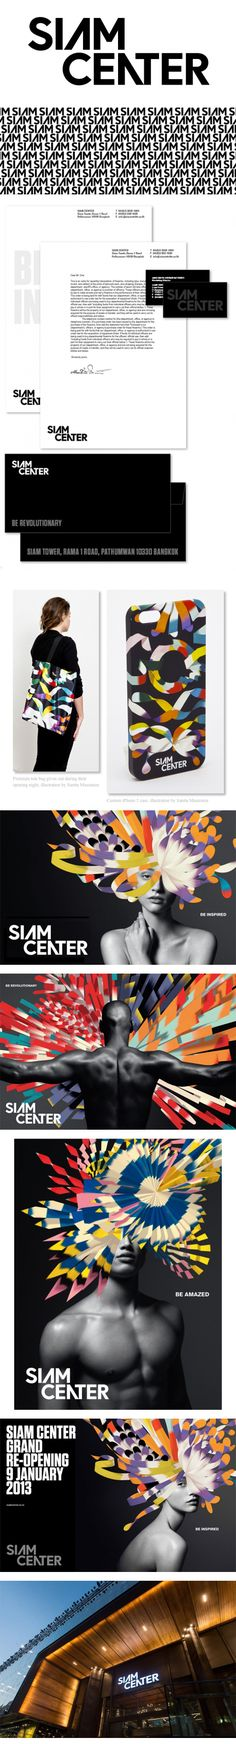 Siam Center branding identity editorial layout clothing printing clothes magazine look book